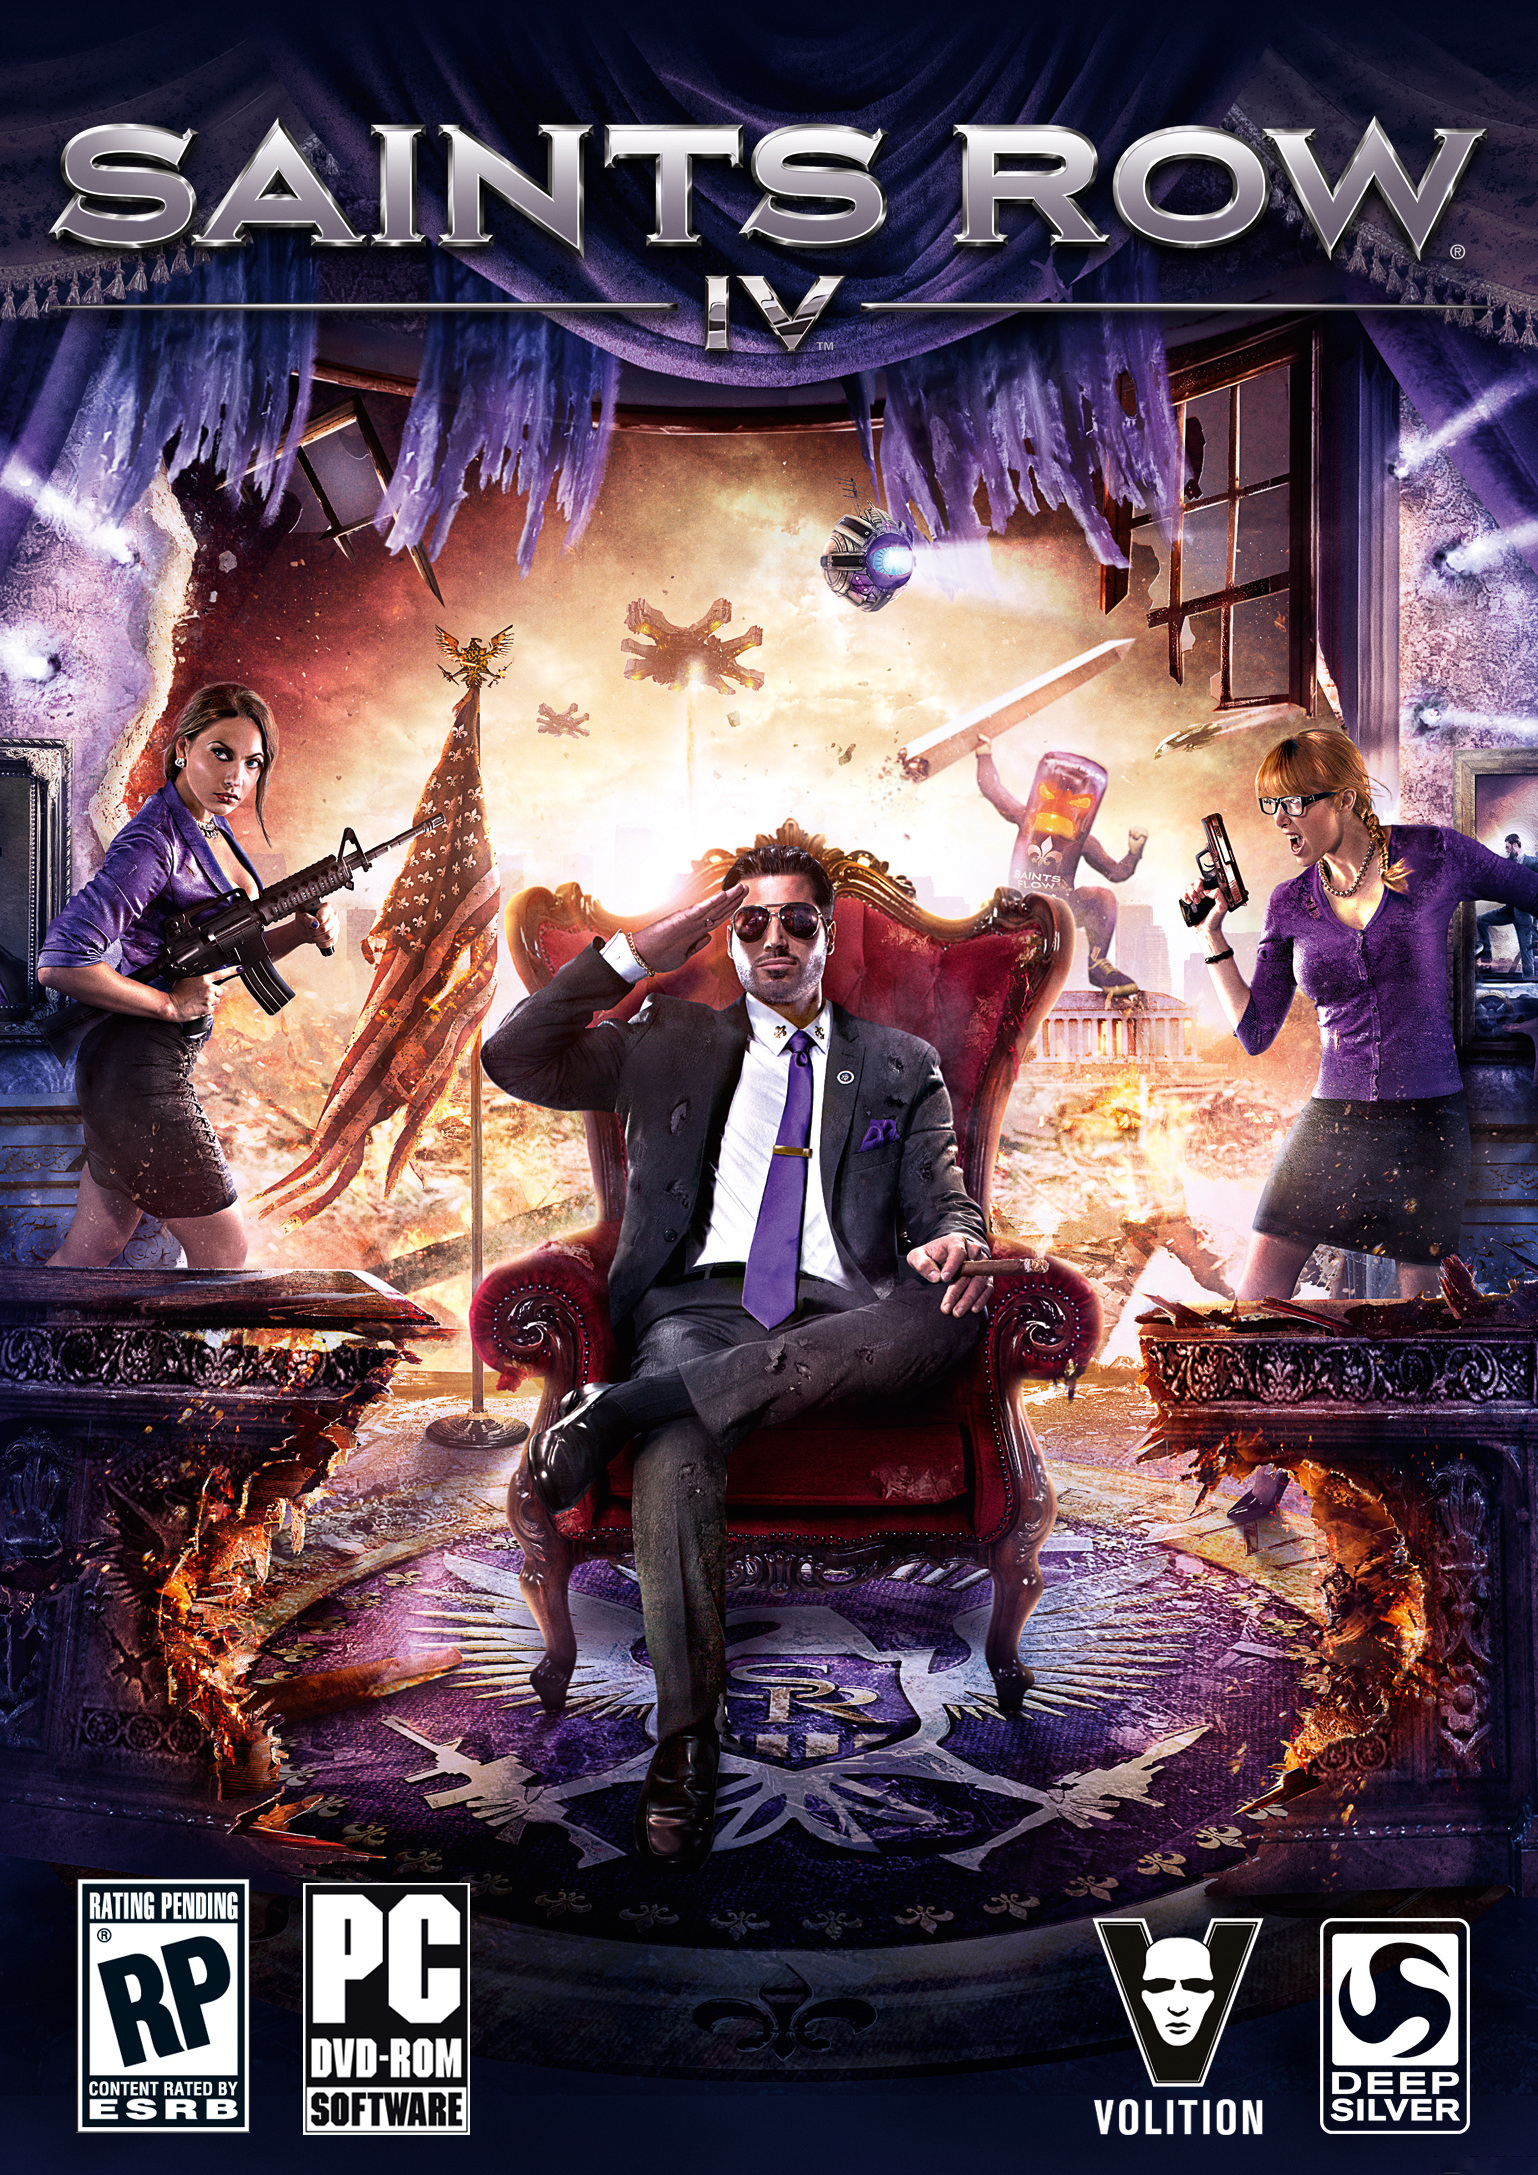 SaintsRow4 PC Jaquette 001